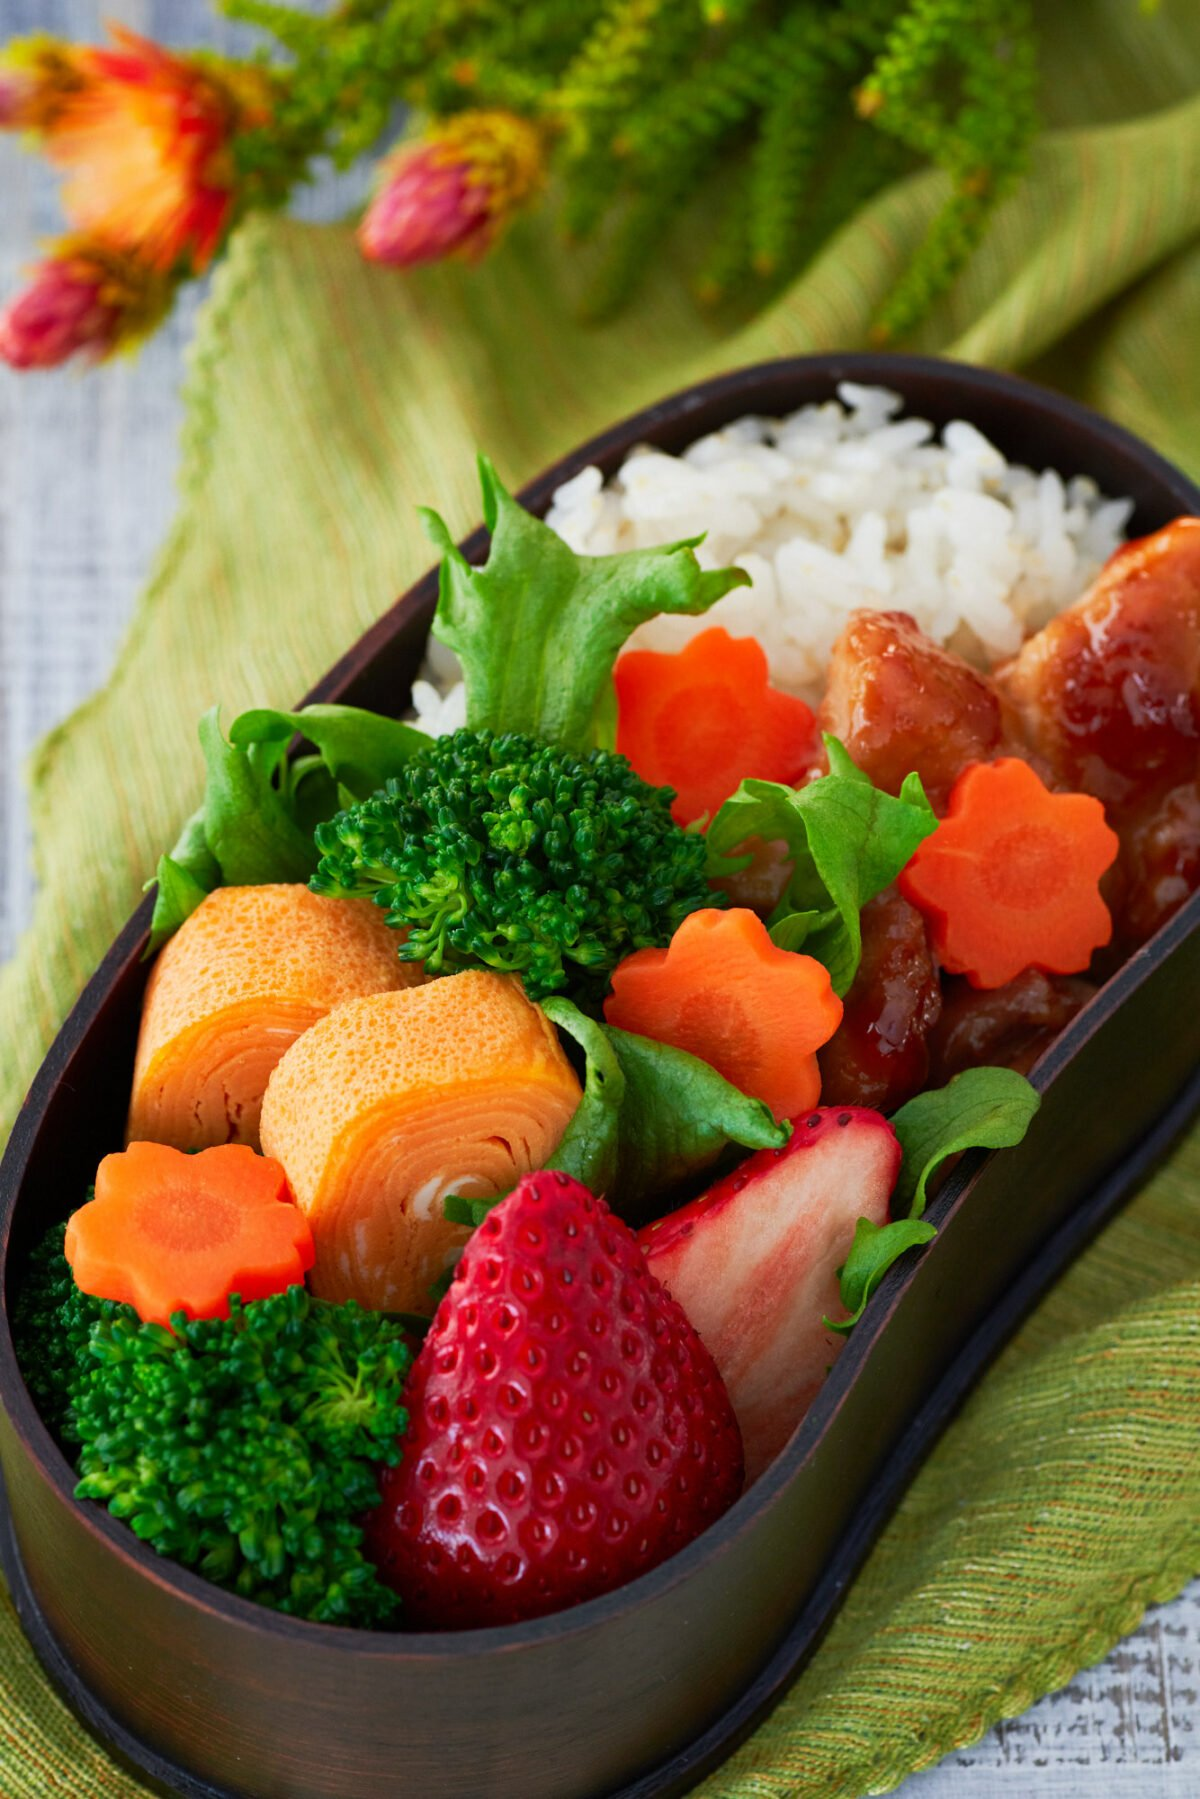 This Ginger Chicken Bento includes just $1.80 worth of ingredients, and yet's it's balanced, satisfying and delicious.